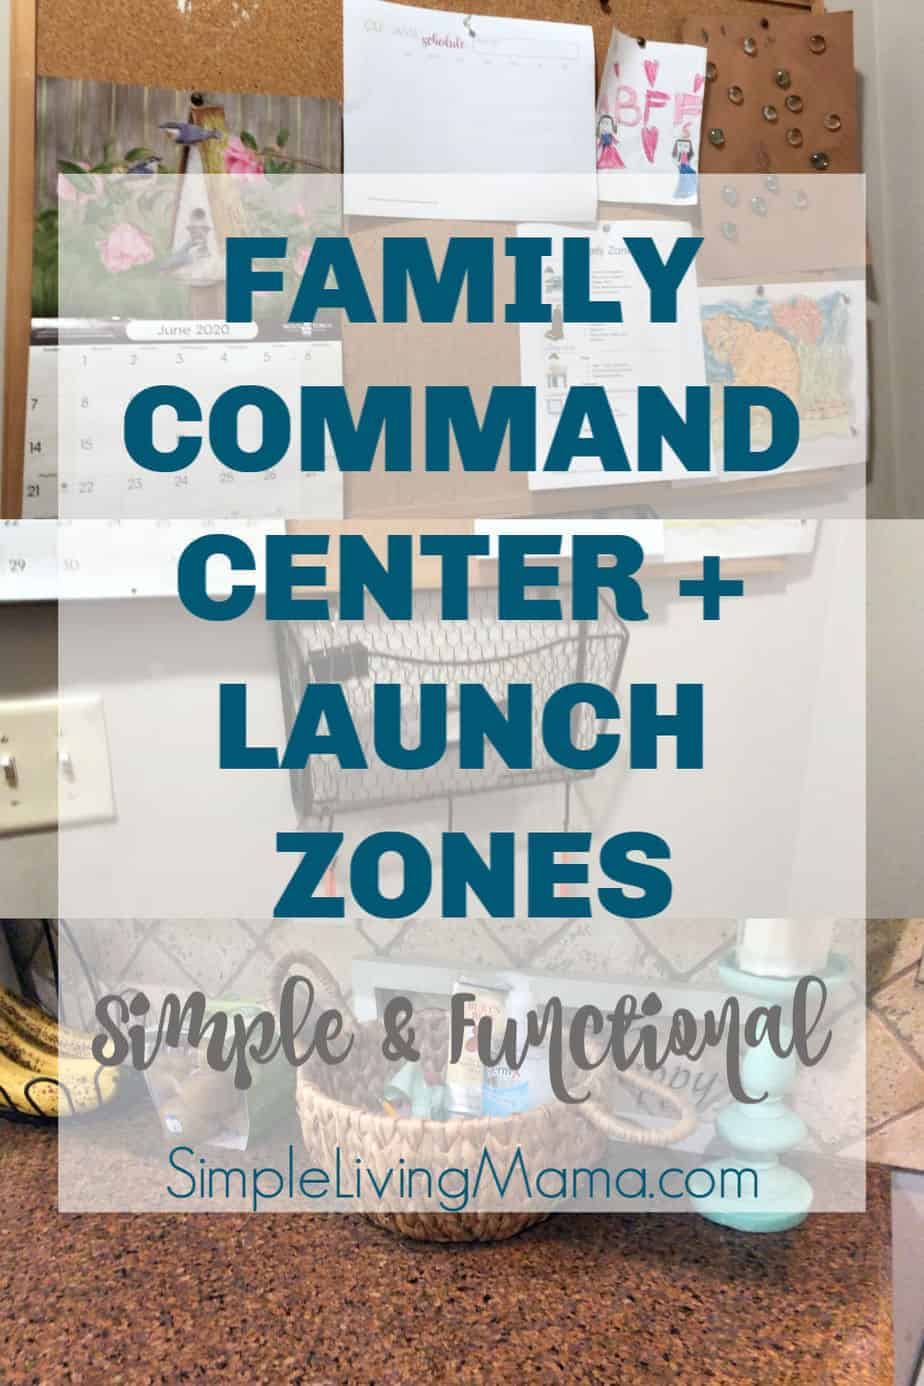 Family command center and launch zones